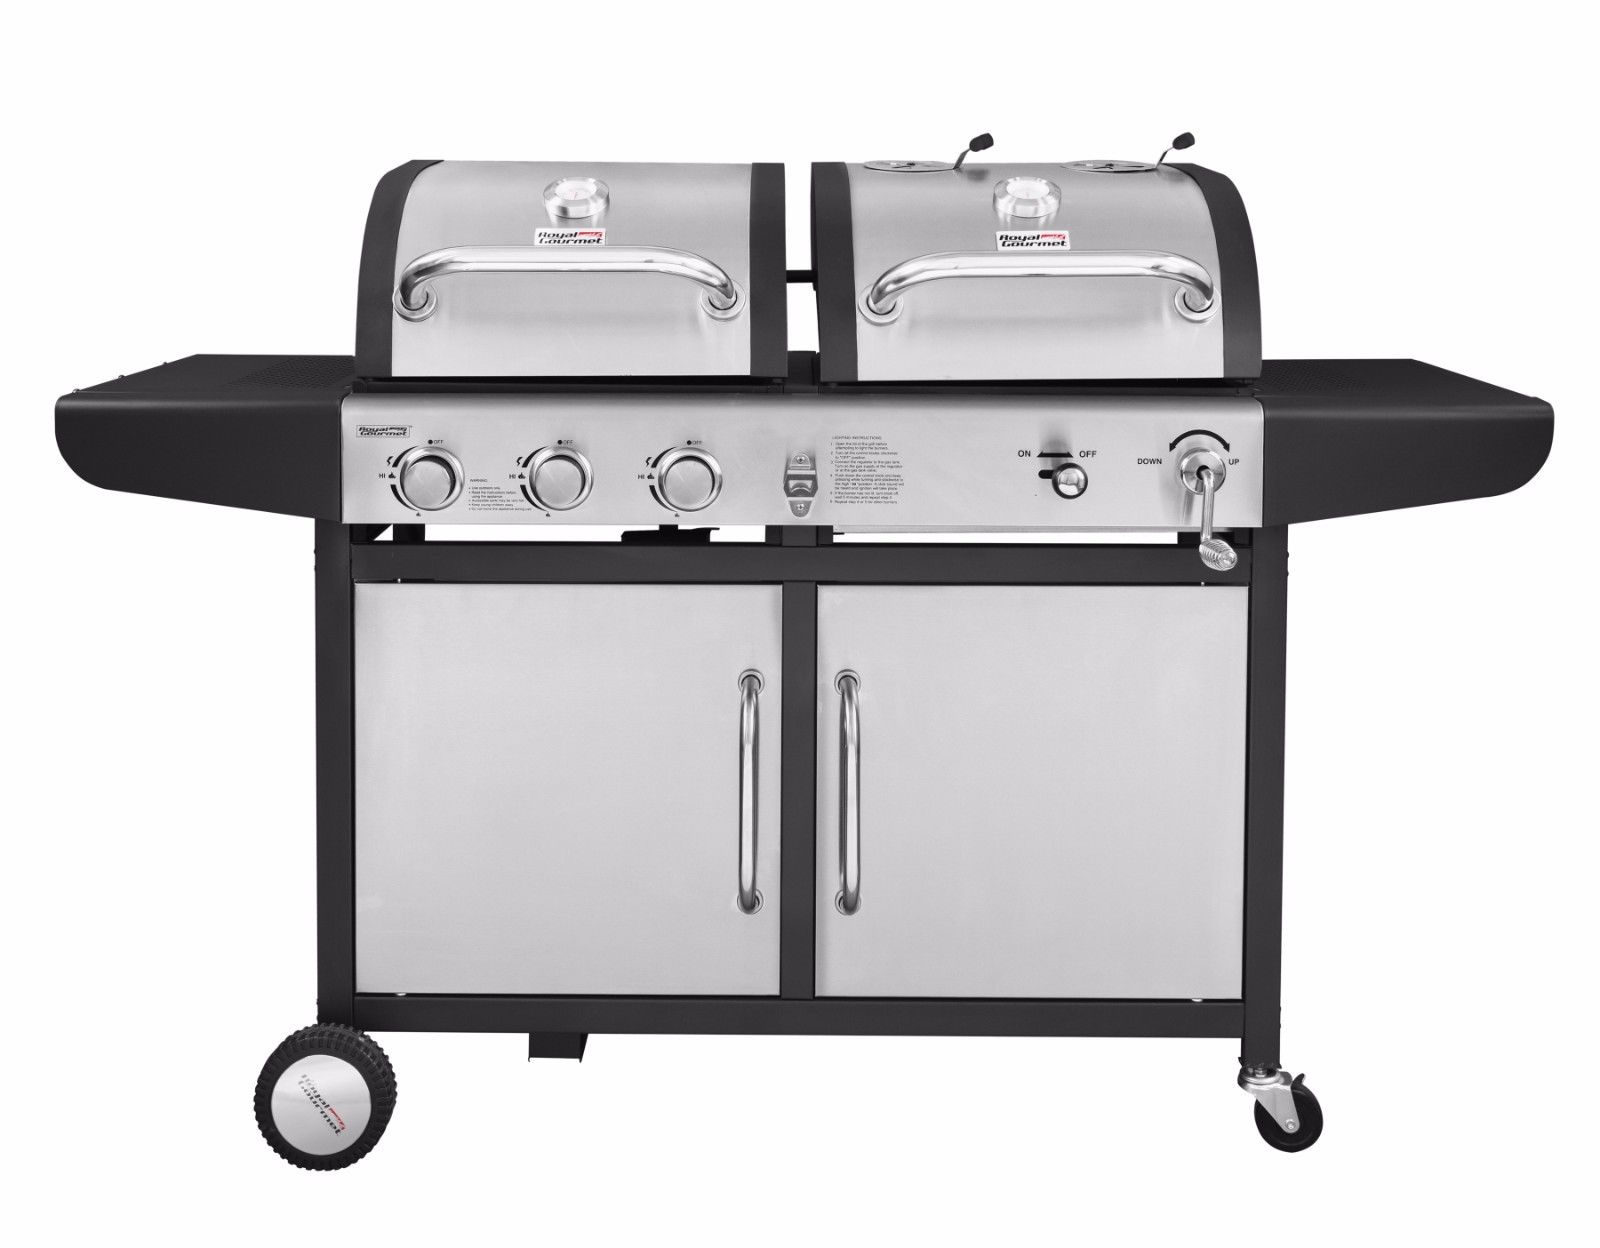 Royal Gourmet ZH3002 3-Burner BBQ Gas Propane Charcoal Grill Combo Dual Fuel 2 Lids Black by Royal Gourmet Corp